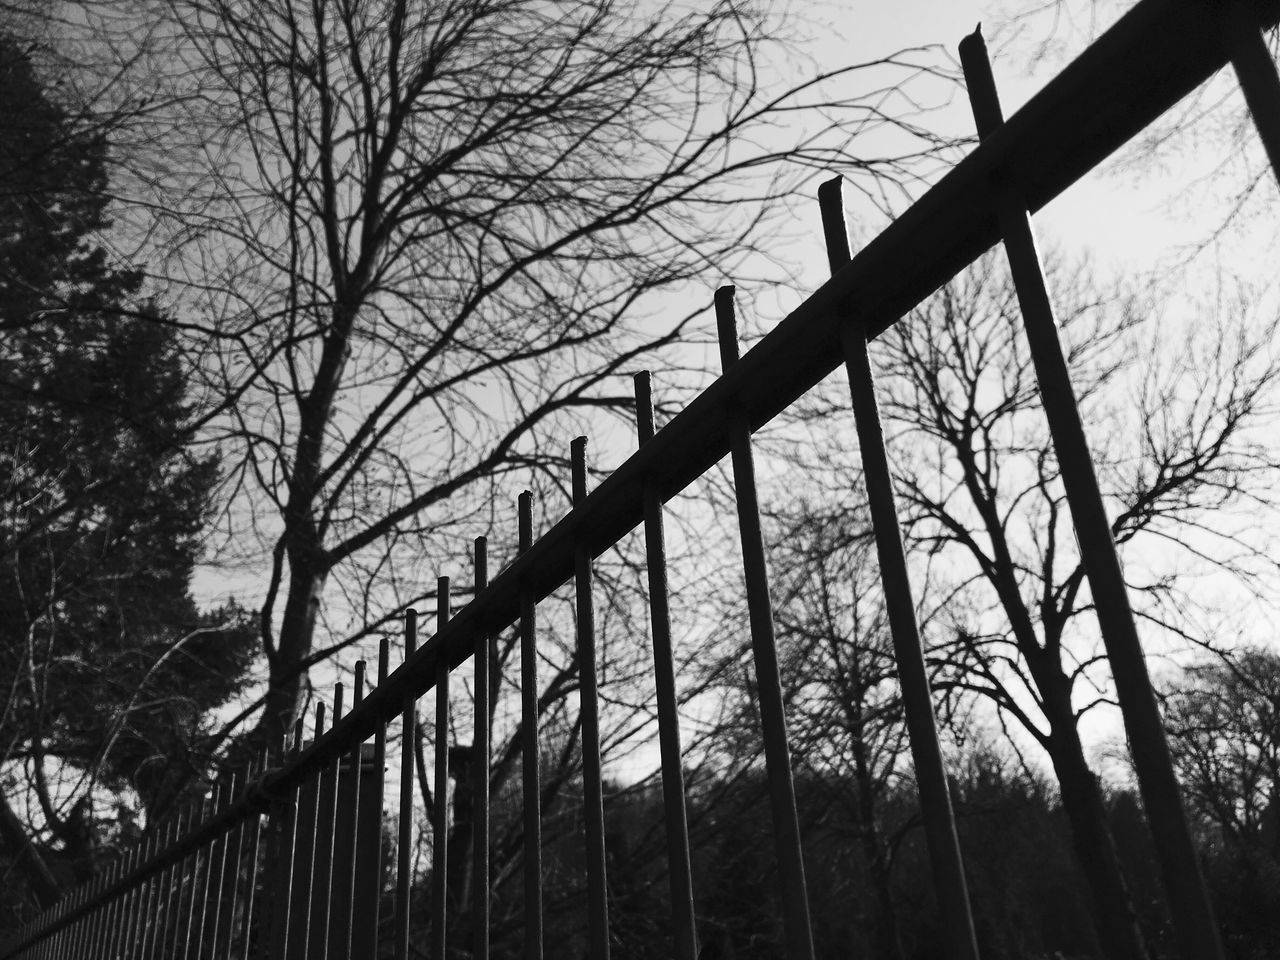 Beware of the Nature Trees Sky Tree And Sky Fence Enclosed Fenced In Barricade Hurdles Barrier Nature Iphone6s IPhoneography Blackandwhite Metal Rods Behindthefence Behind The Fence... Branches Black And White